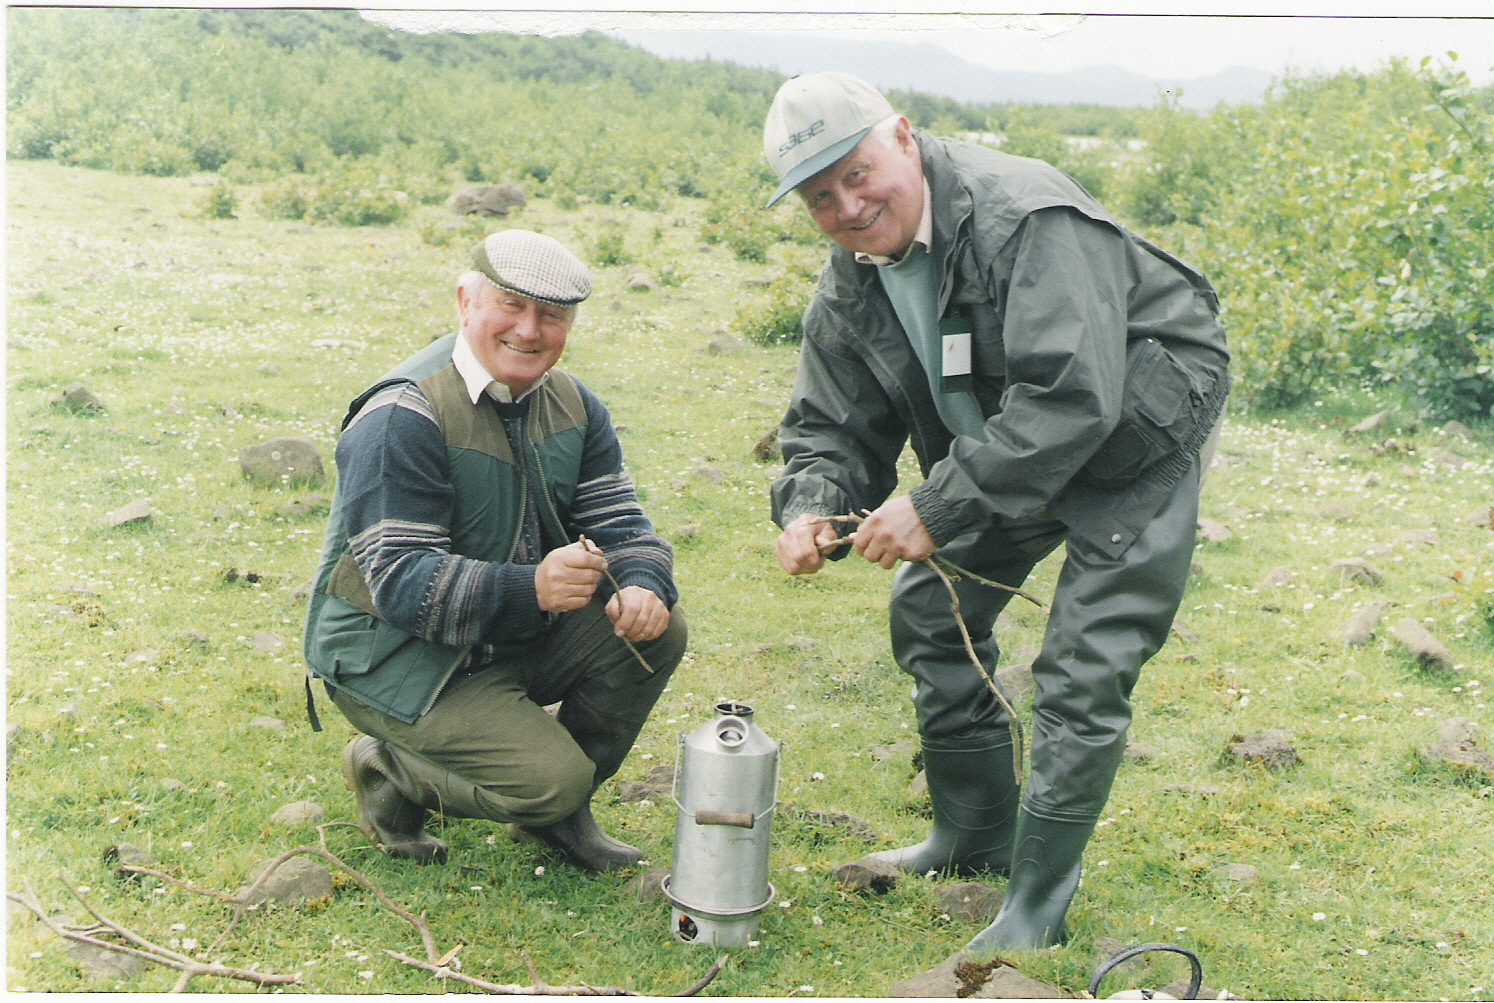 'Founding Fathers' Padraig Kelly & Frank Ellis (RIP) on the shores of Lough Conn, Ireland 1998